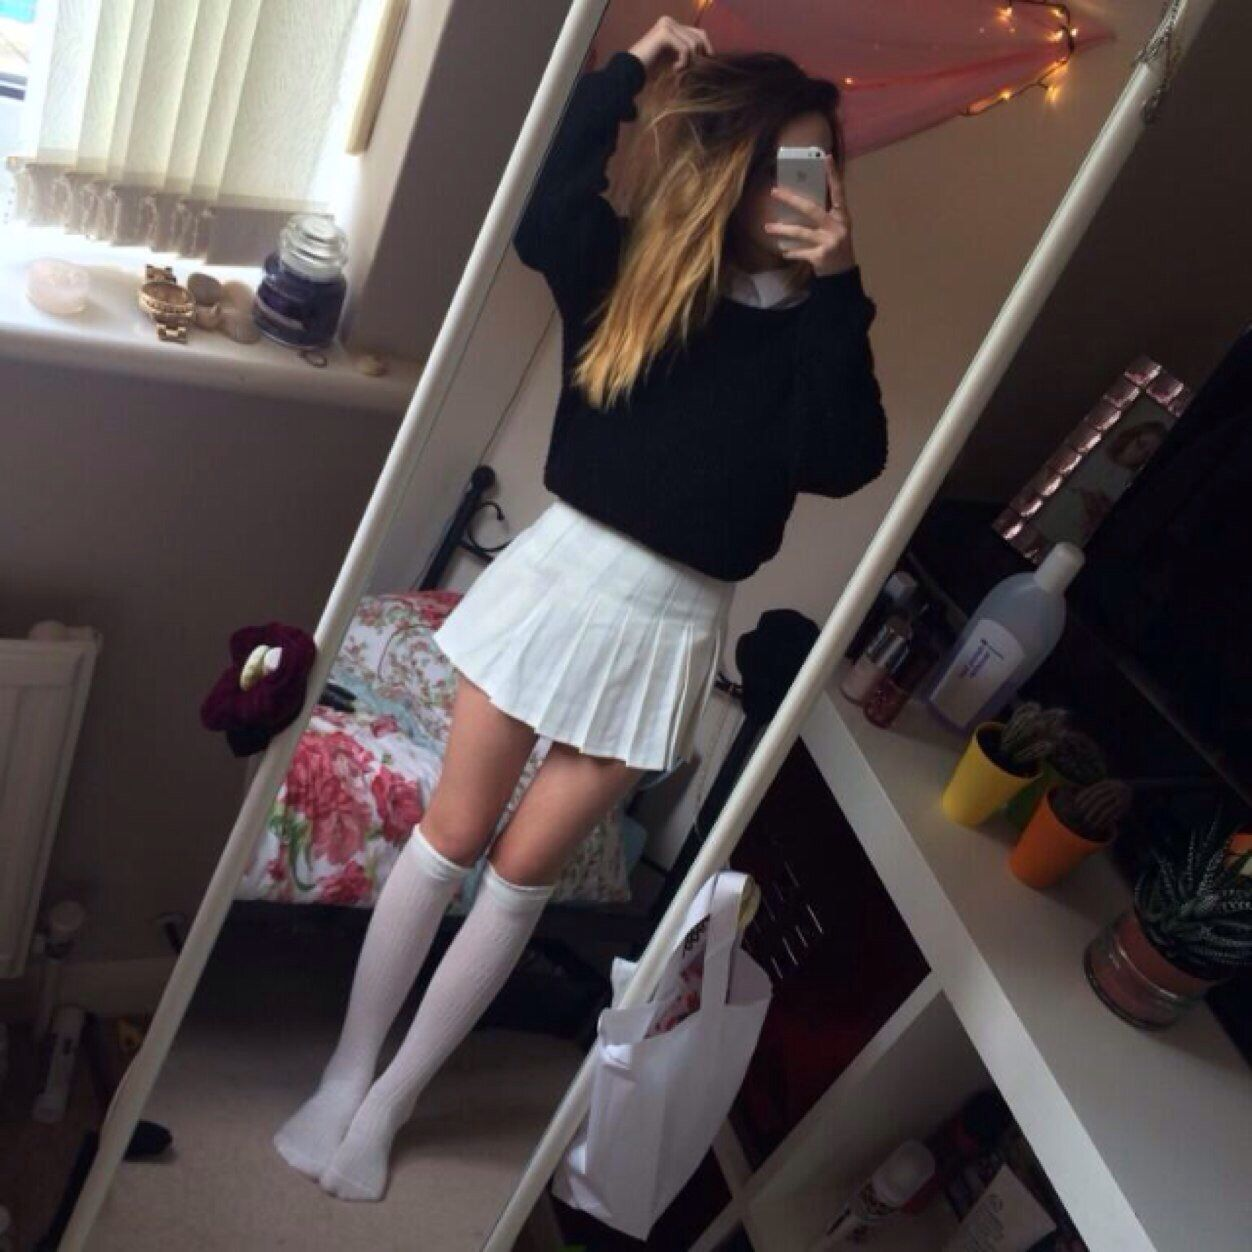 Tennis Skirt Over The Knee Socks Omg Kneehighsocks Fashion Tennis Skirt Cute Outfits With Jeans